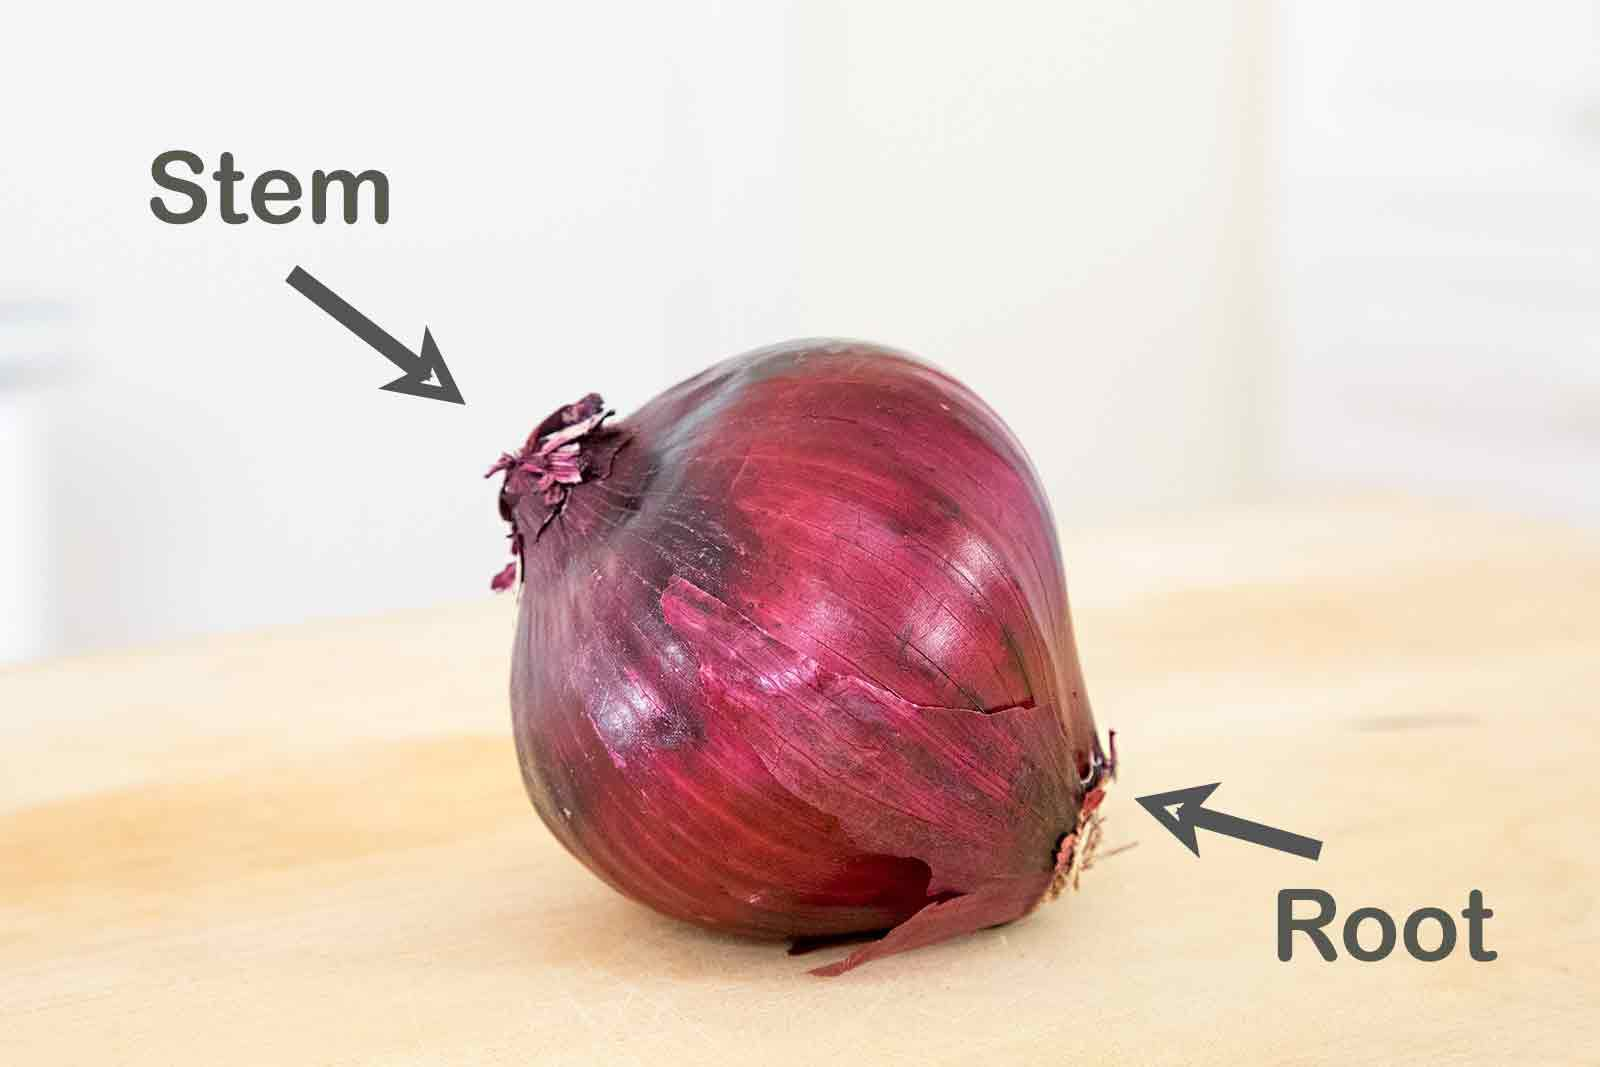 Onion stem end and root end